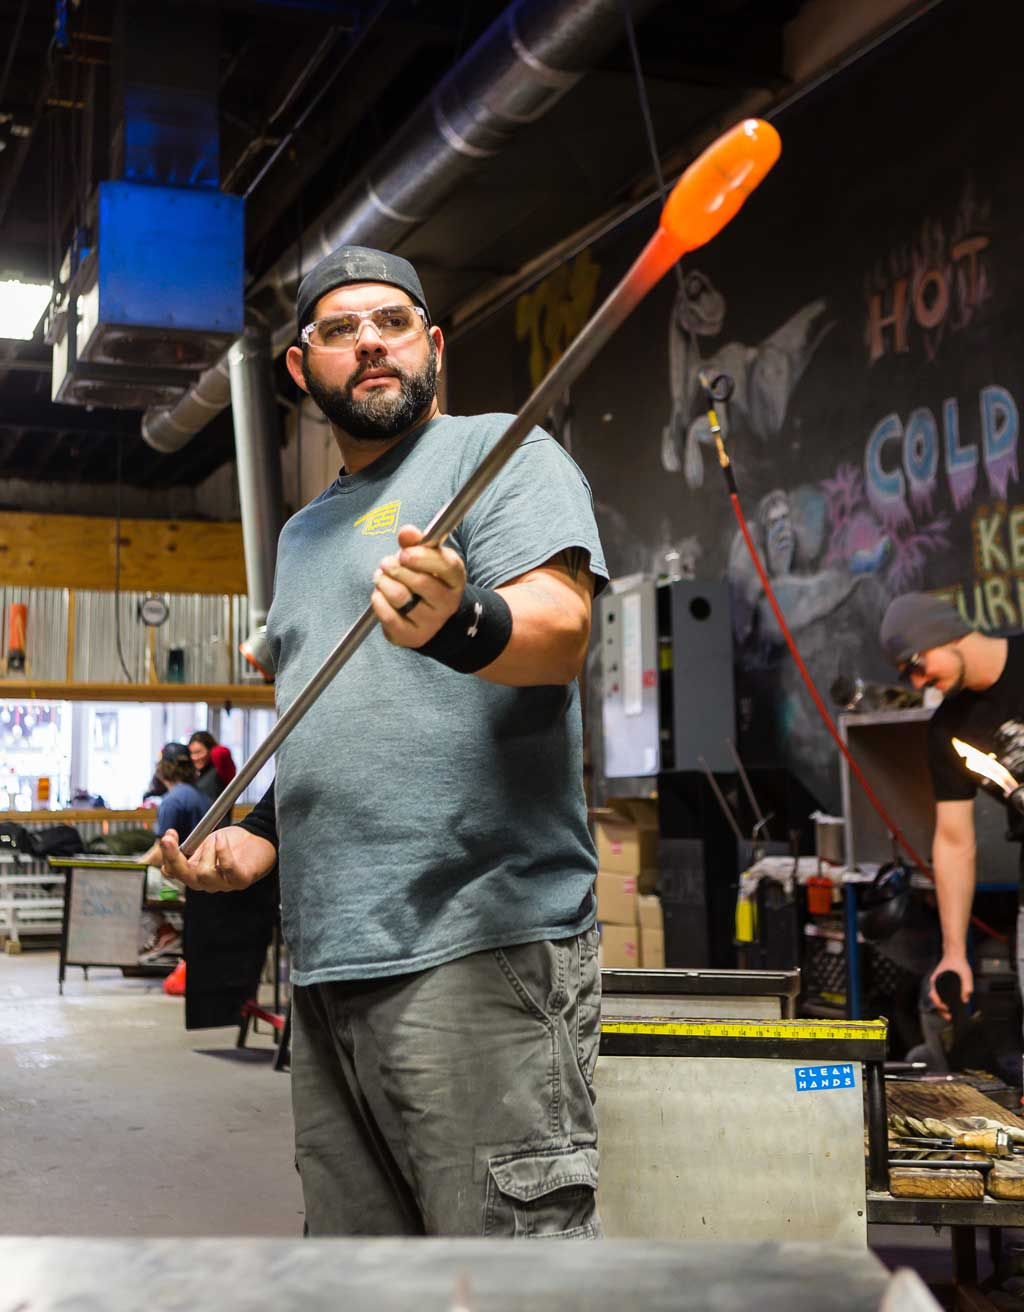 Kenneth Gonzalez learned glassblowing in college and now works to teach the art to students in Tulsa. Photo by Chris Humphrey Photographer.